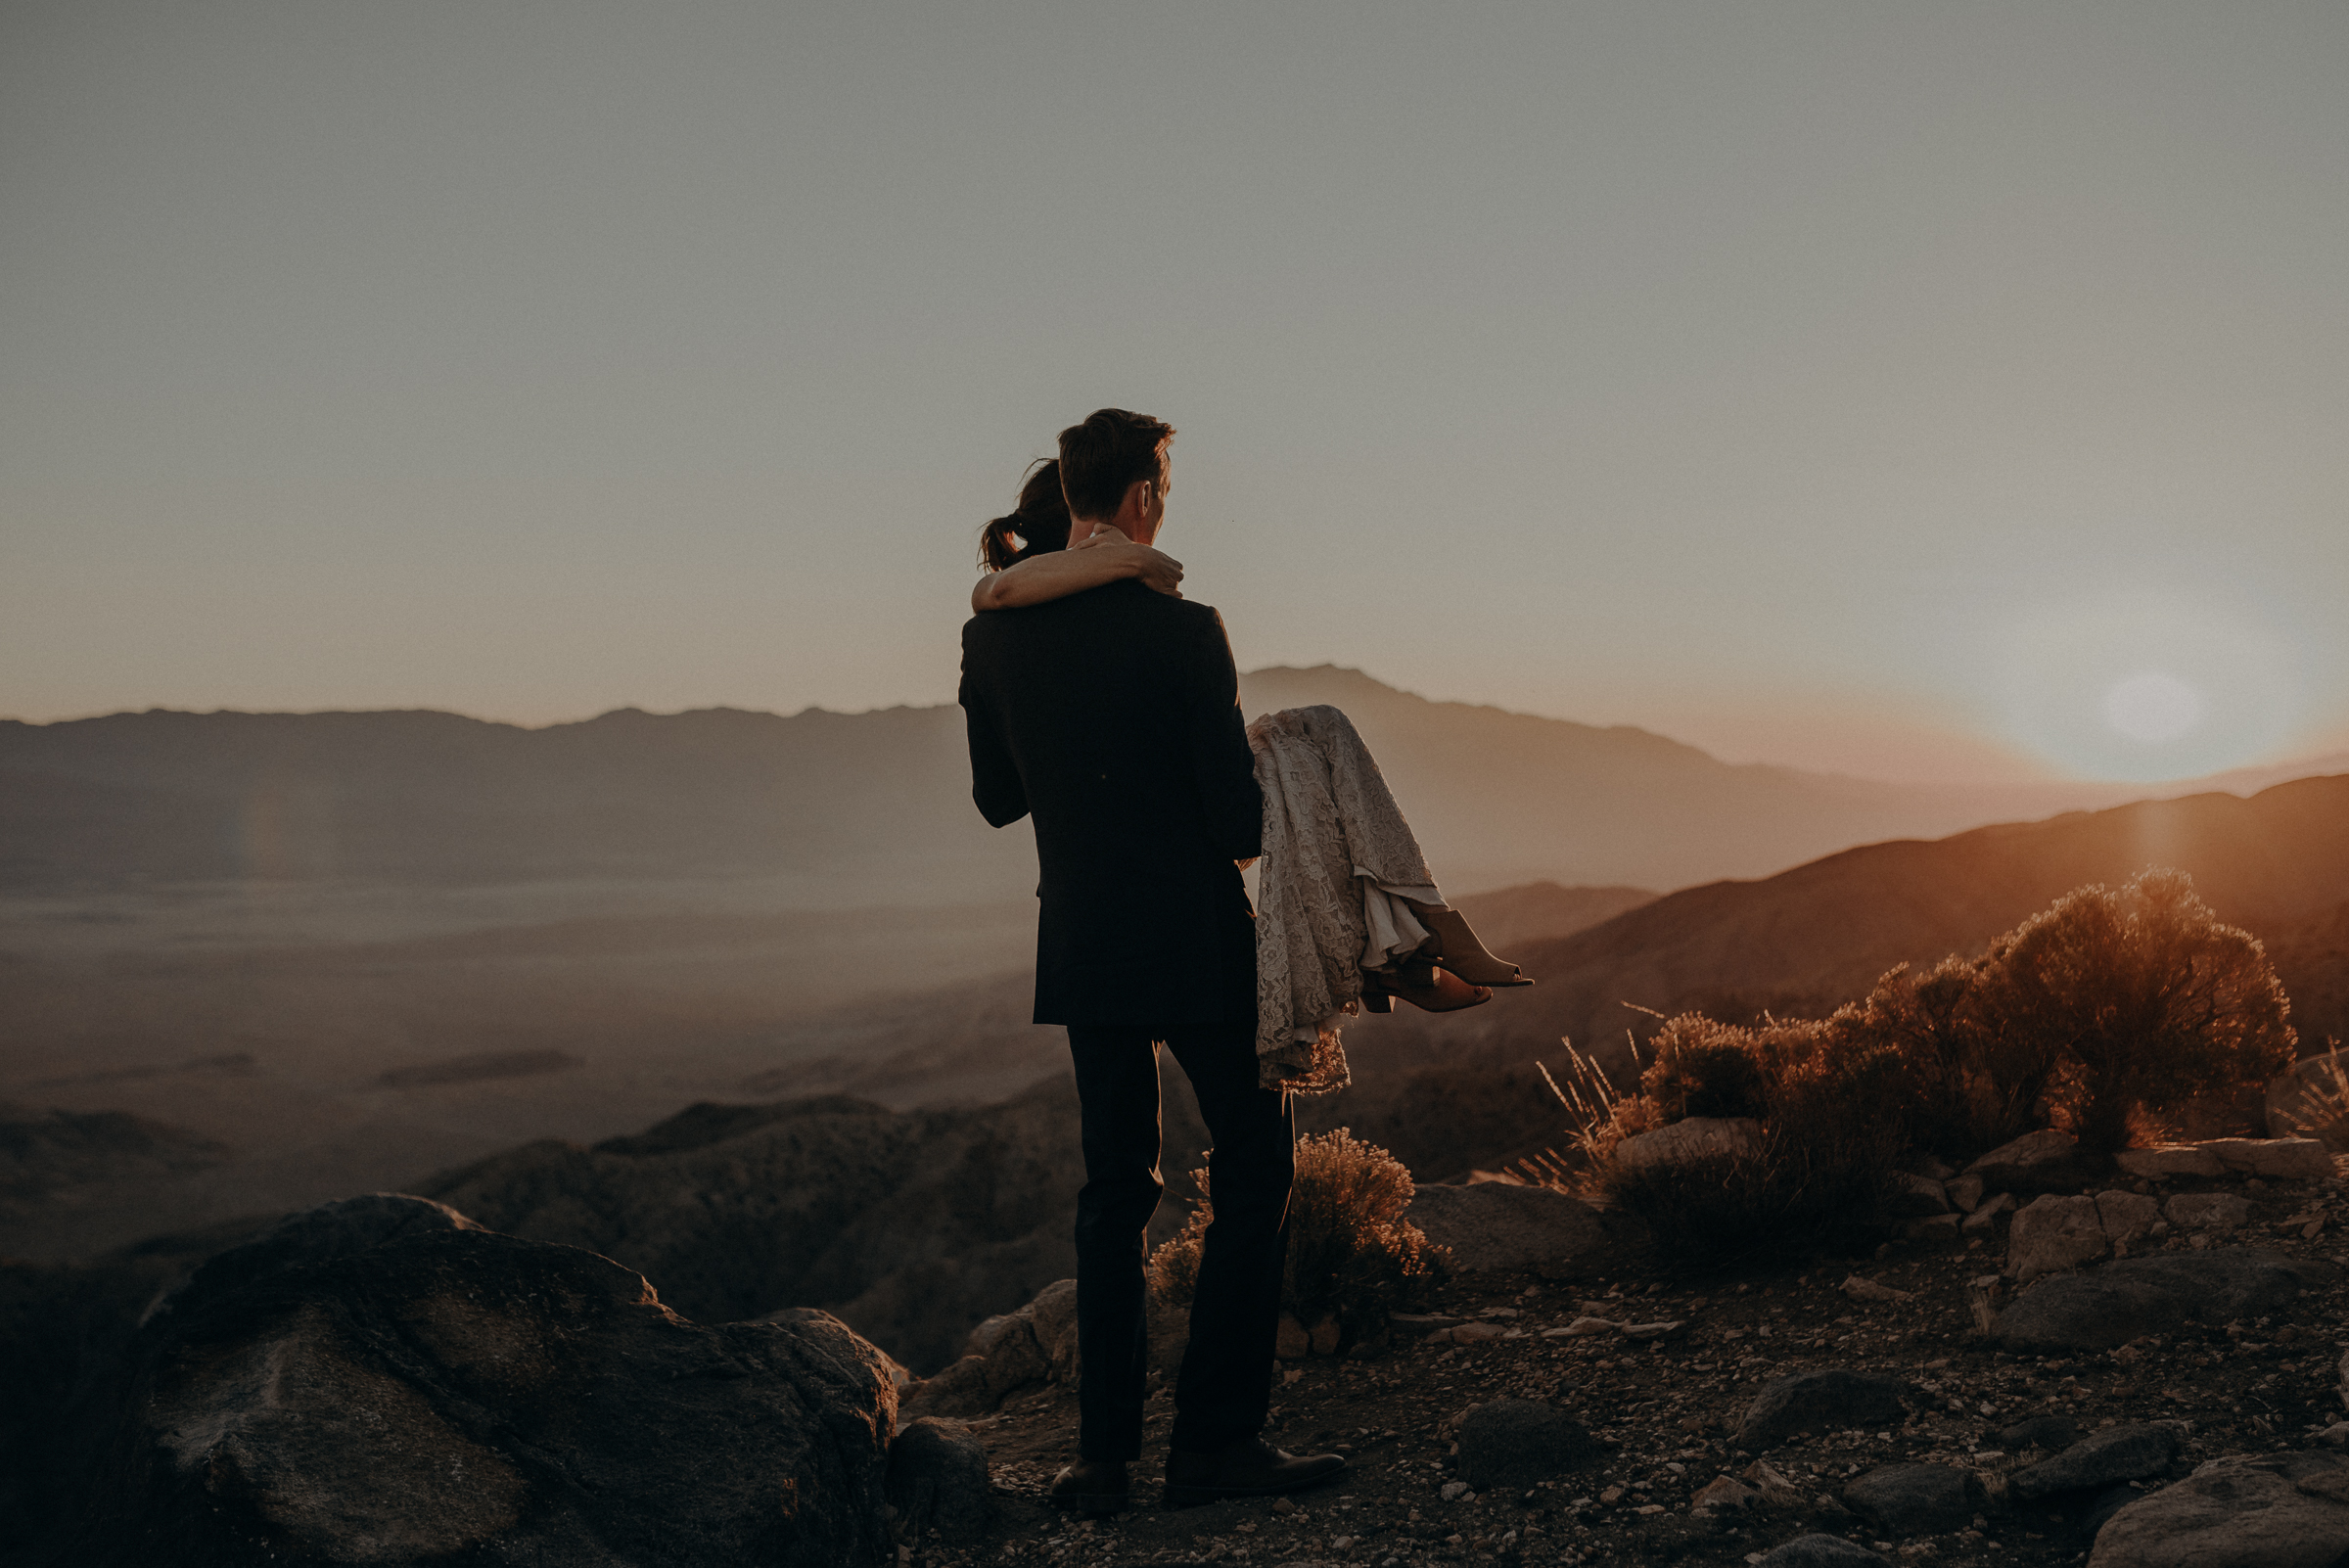 Joshua Tree Elopement - Los Angeles Wedding Photographers - IsaiahAndTaylor.com-108.jpg